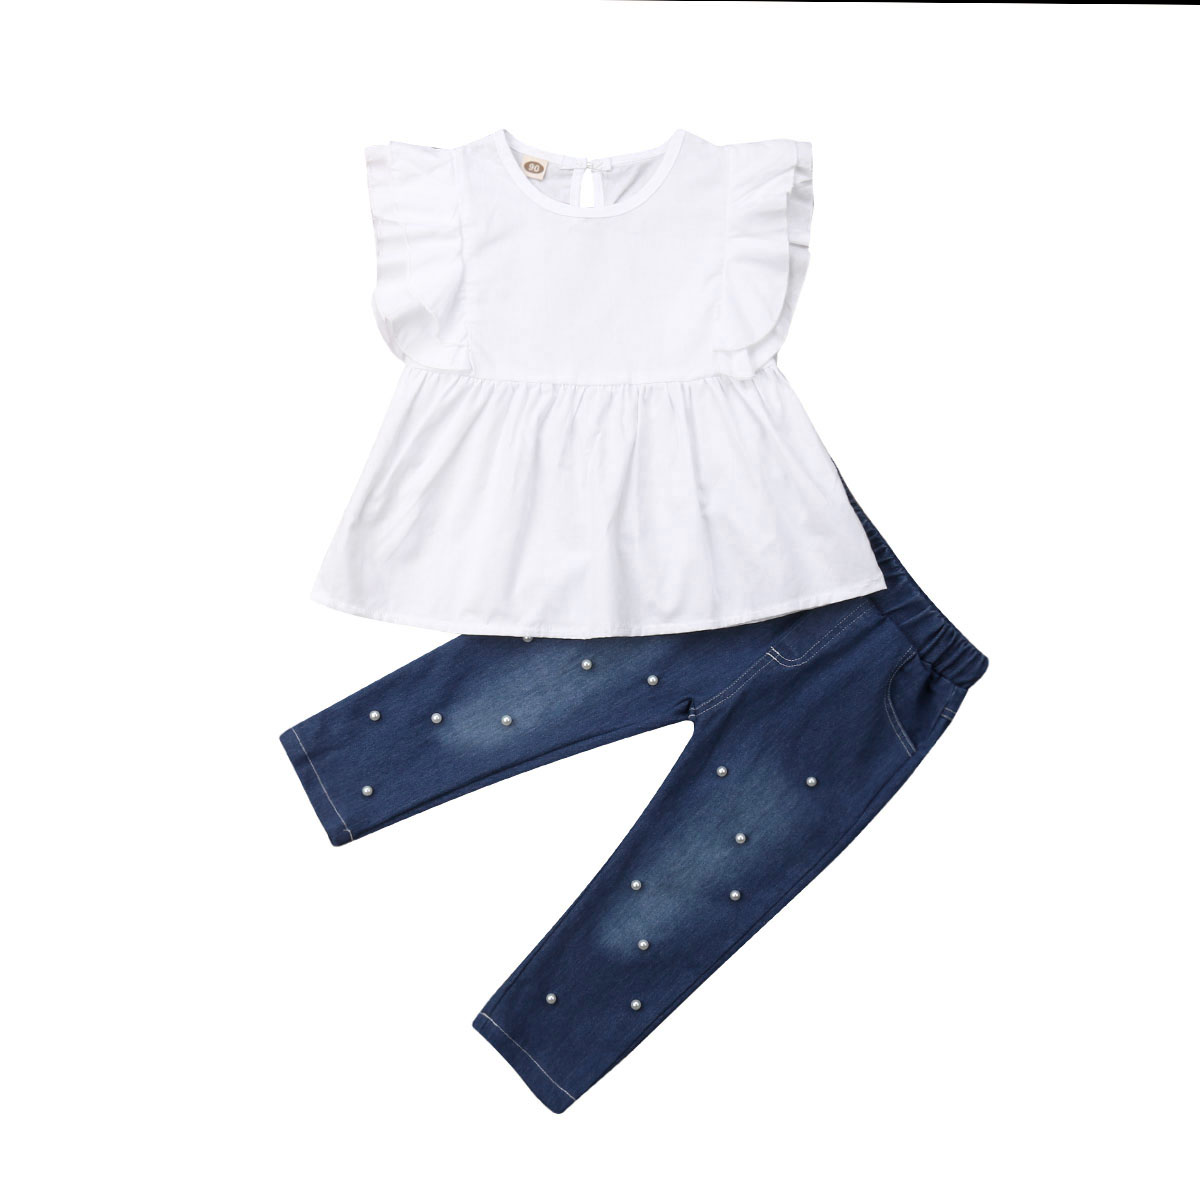 girl Set 2019 New Brand Toddler Kids Baby Girls Cotton Summer Sleeveless Top T-shirt Pants Outfits Clothes